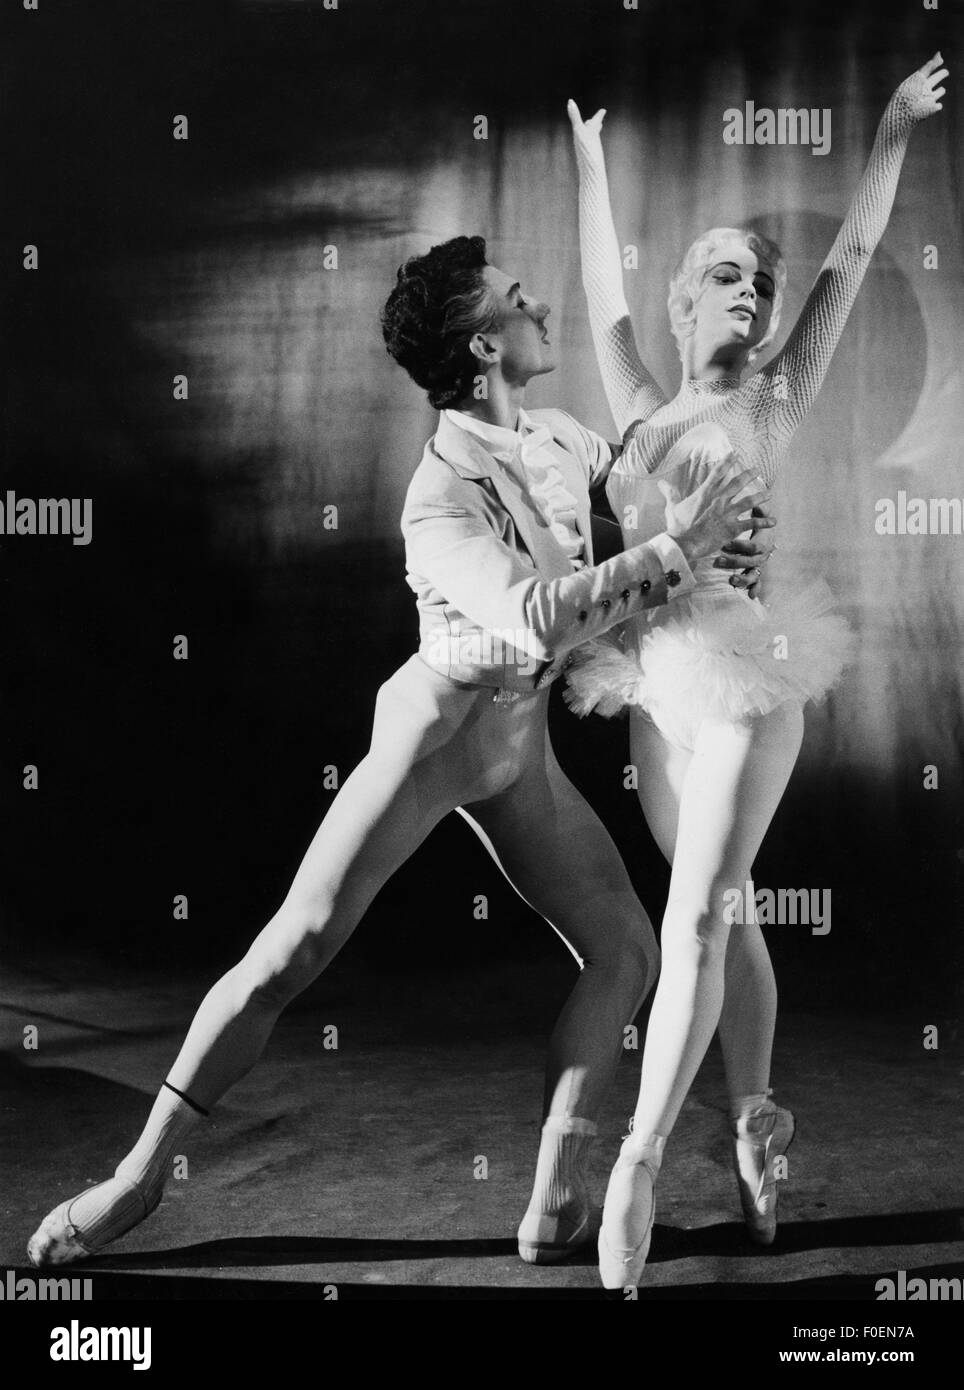 dance, ballet, couple in classical pose, 1950s, Additional-Rights-Clearences-NA - Stock Image